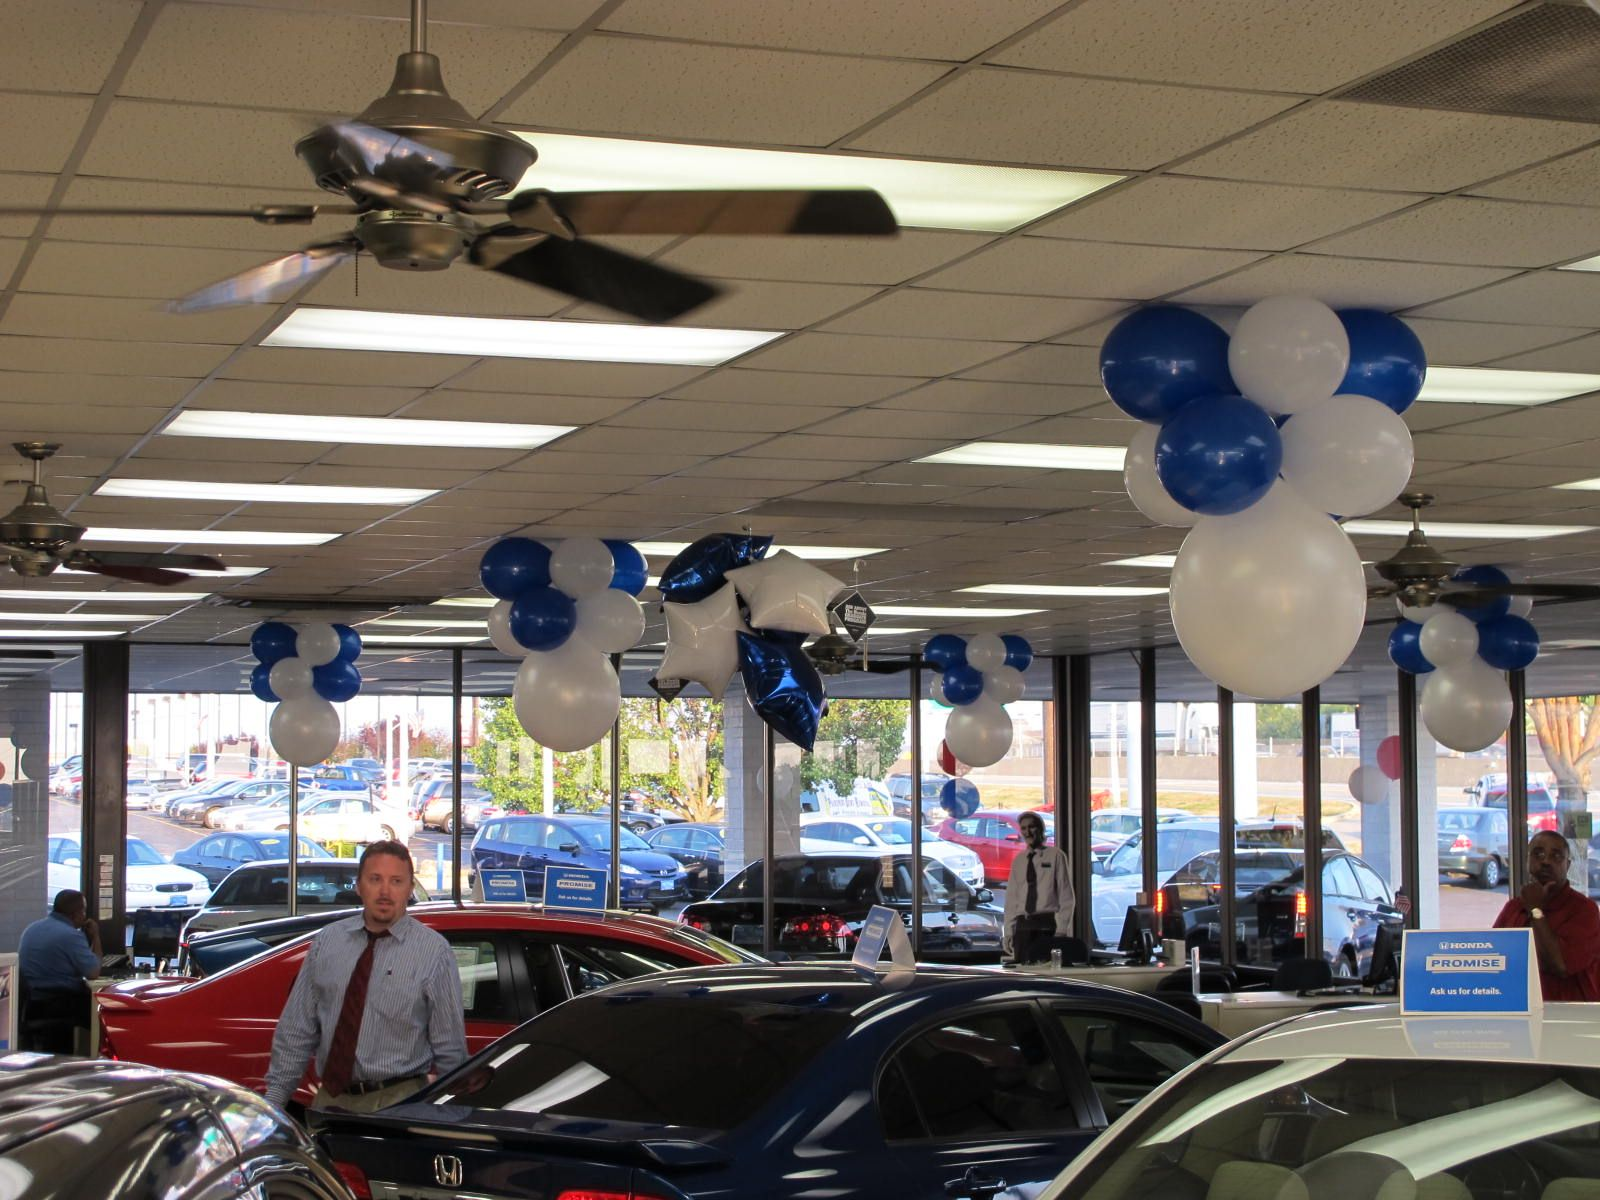 Car Dealership Balloon Decor Balloon Showroom Decor Balloon